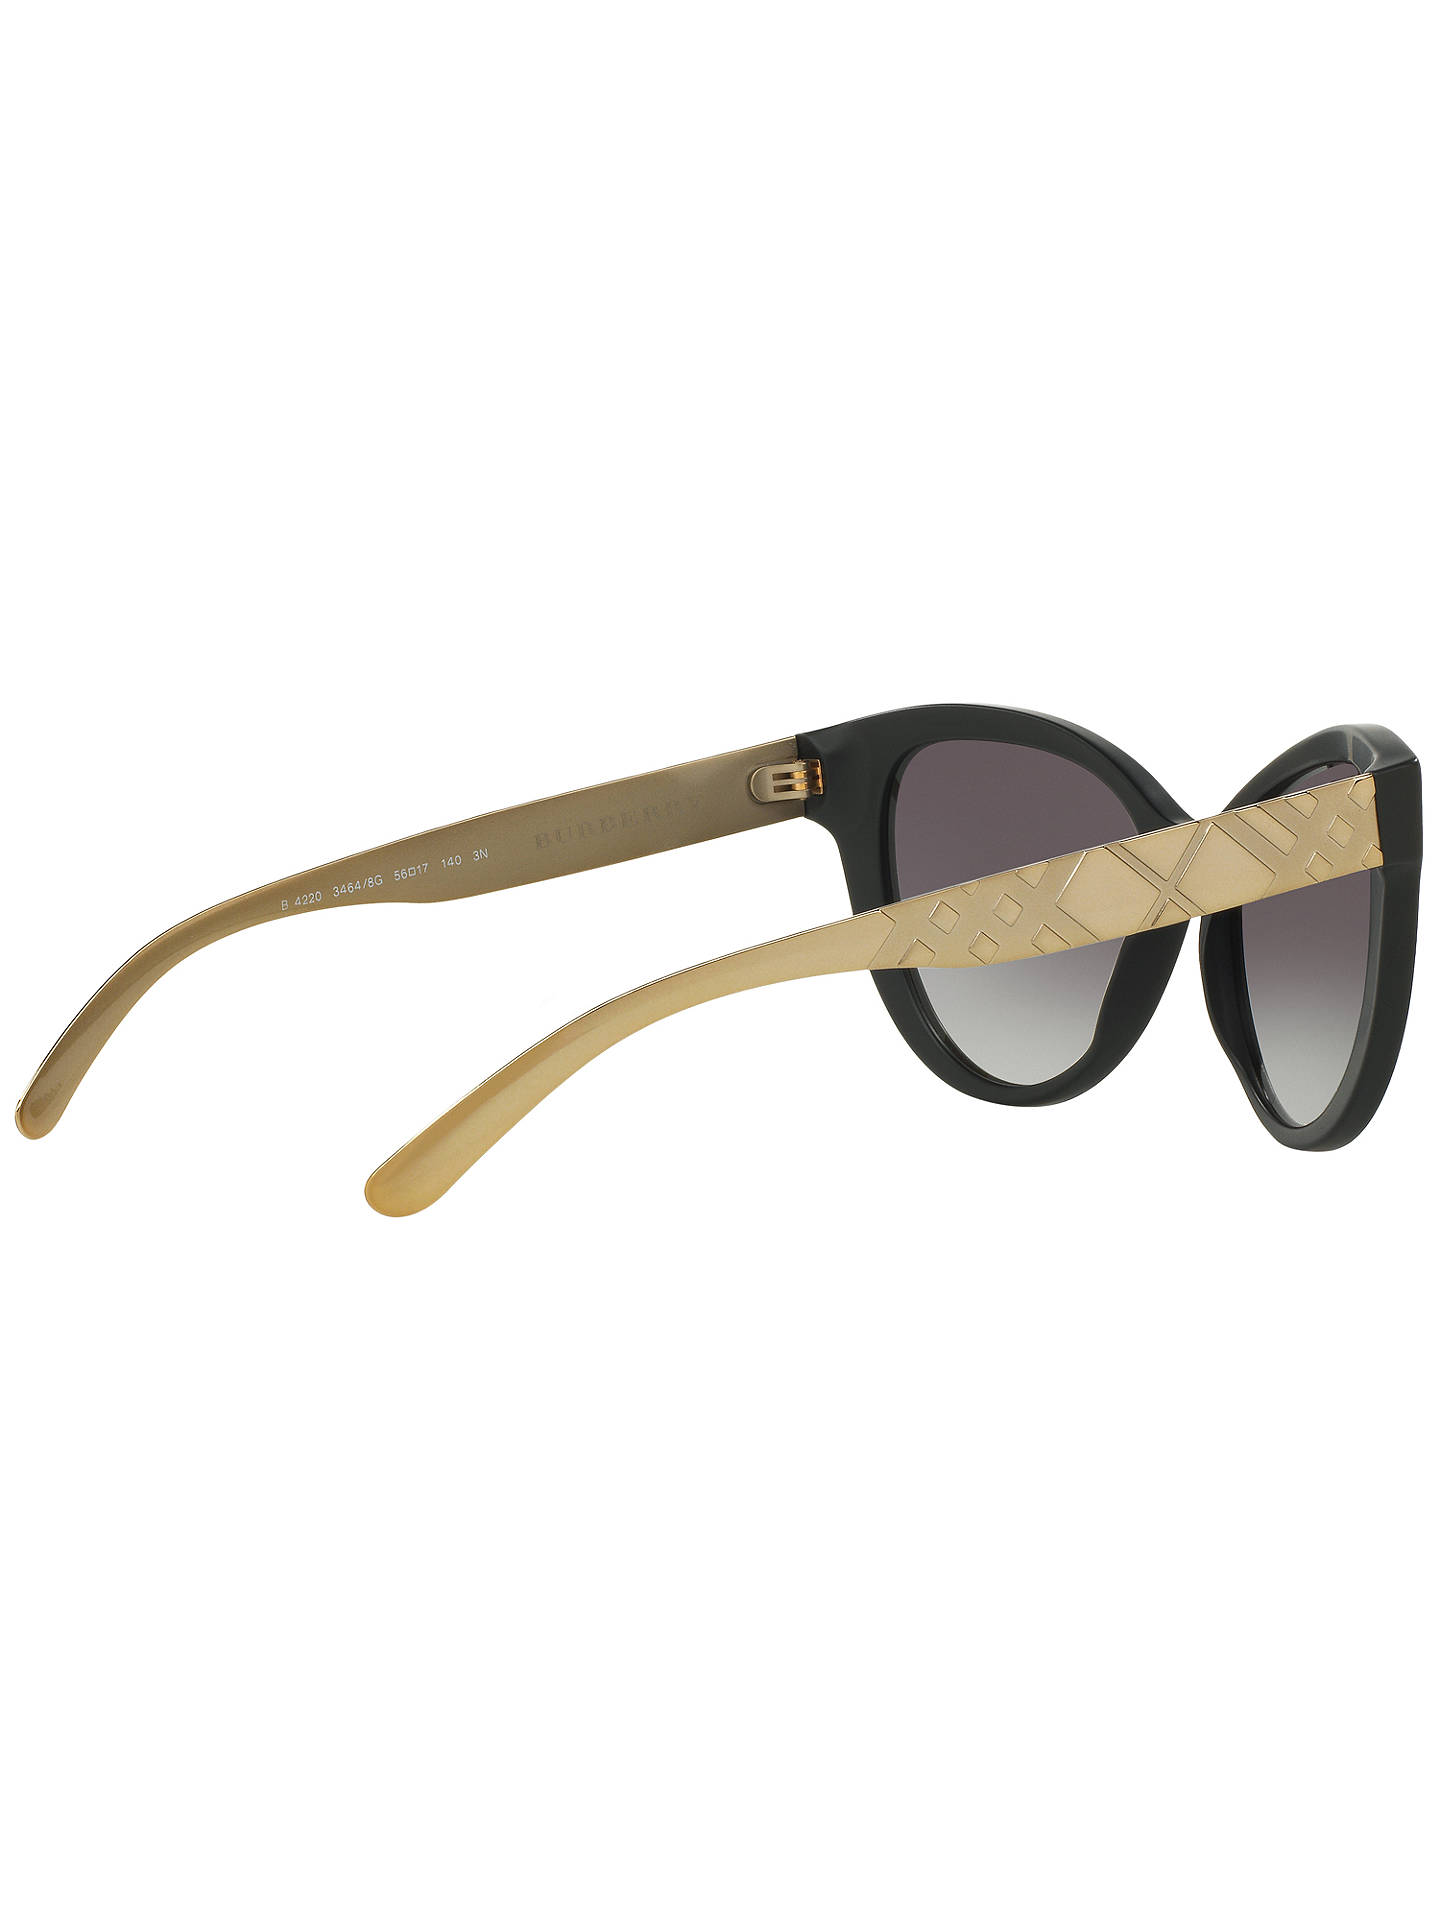 BuyBurberry BE4220 Gradient Cat's Eye Sunglasses, Black Online at johnlewis.com